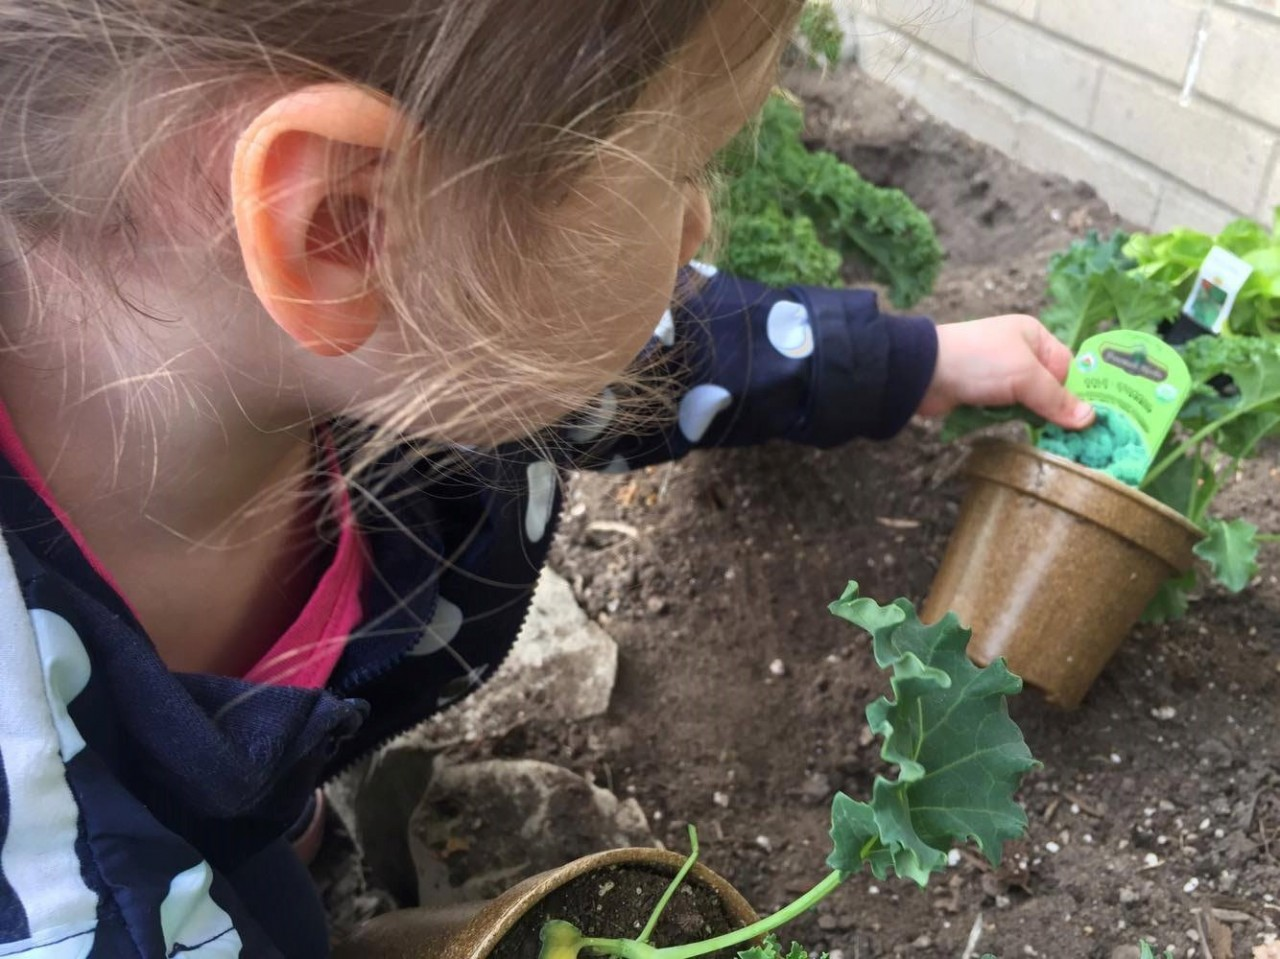 The Easiest Way to Get Kids to Eat Veggies Involves Dirt